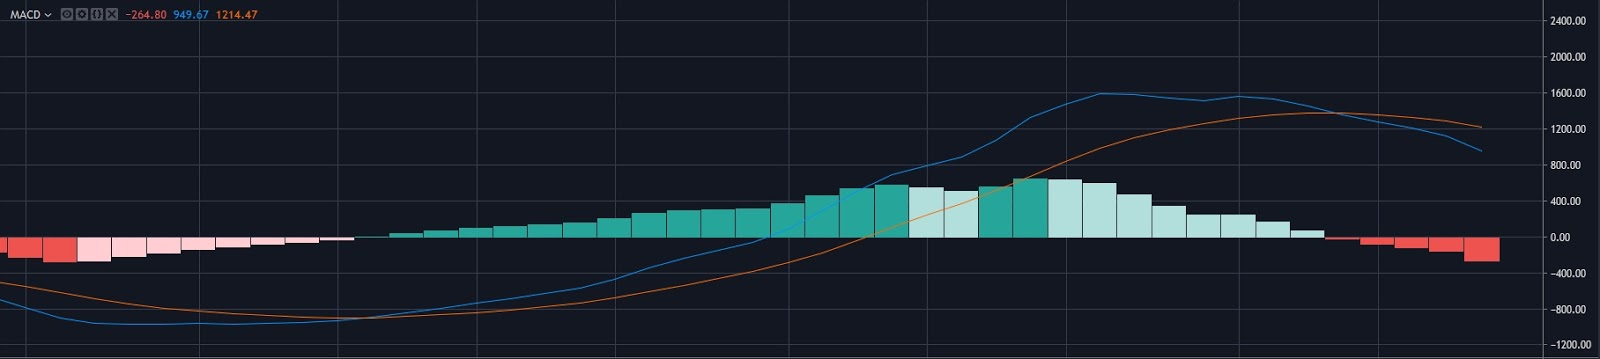 BTC USD 1 Week MACD